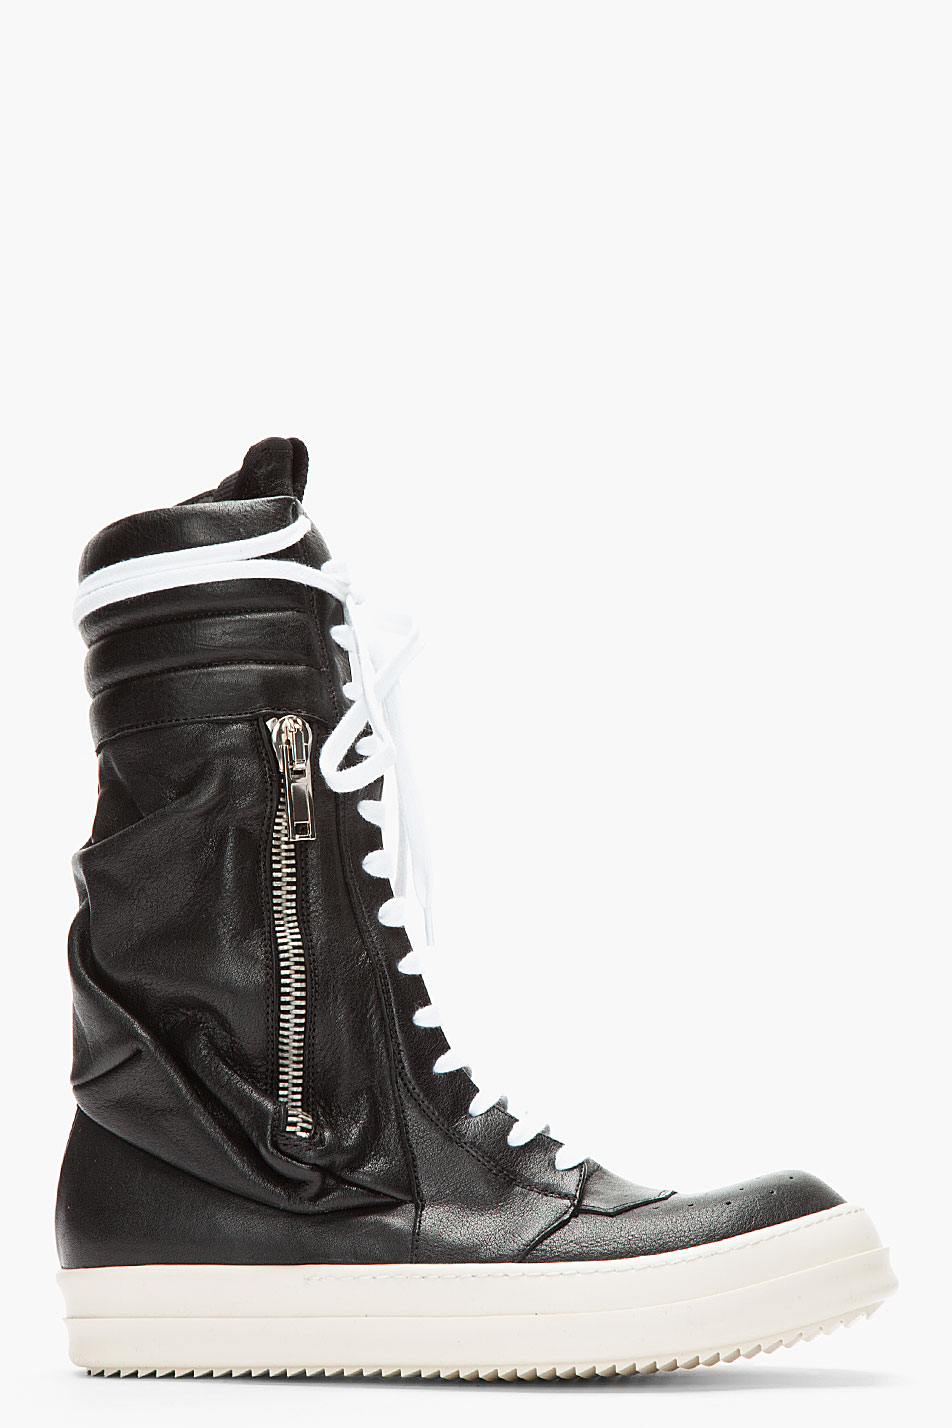 rick owens black cargobasket leather sneaker boots in